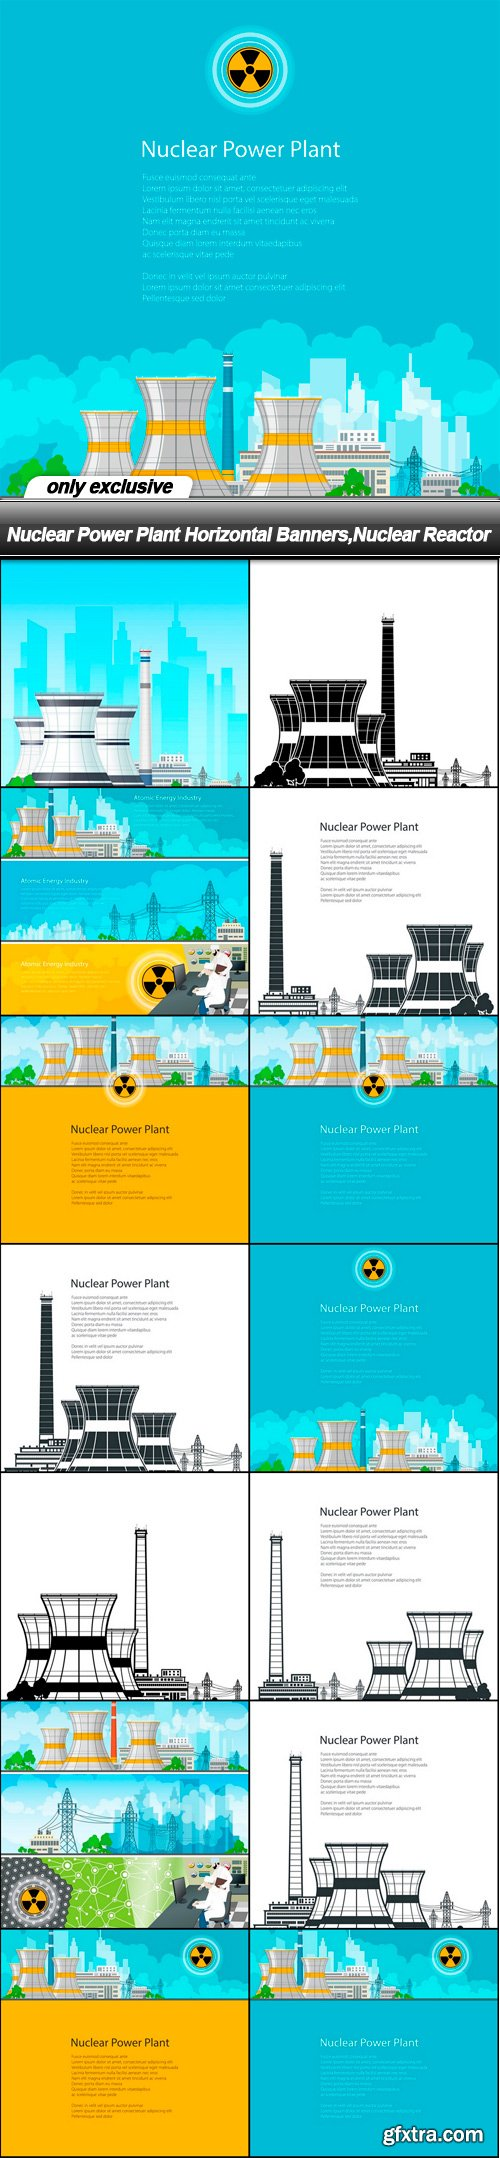 Nuclear Power Plant Horizontal Banners, Nuclear Reactor - 14 EPS